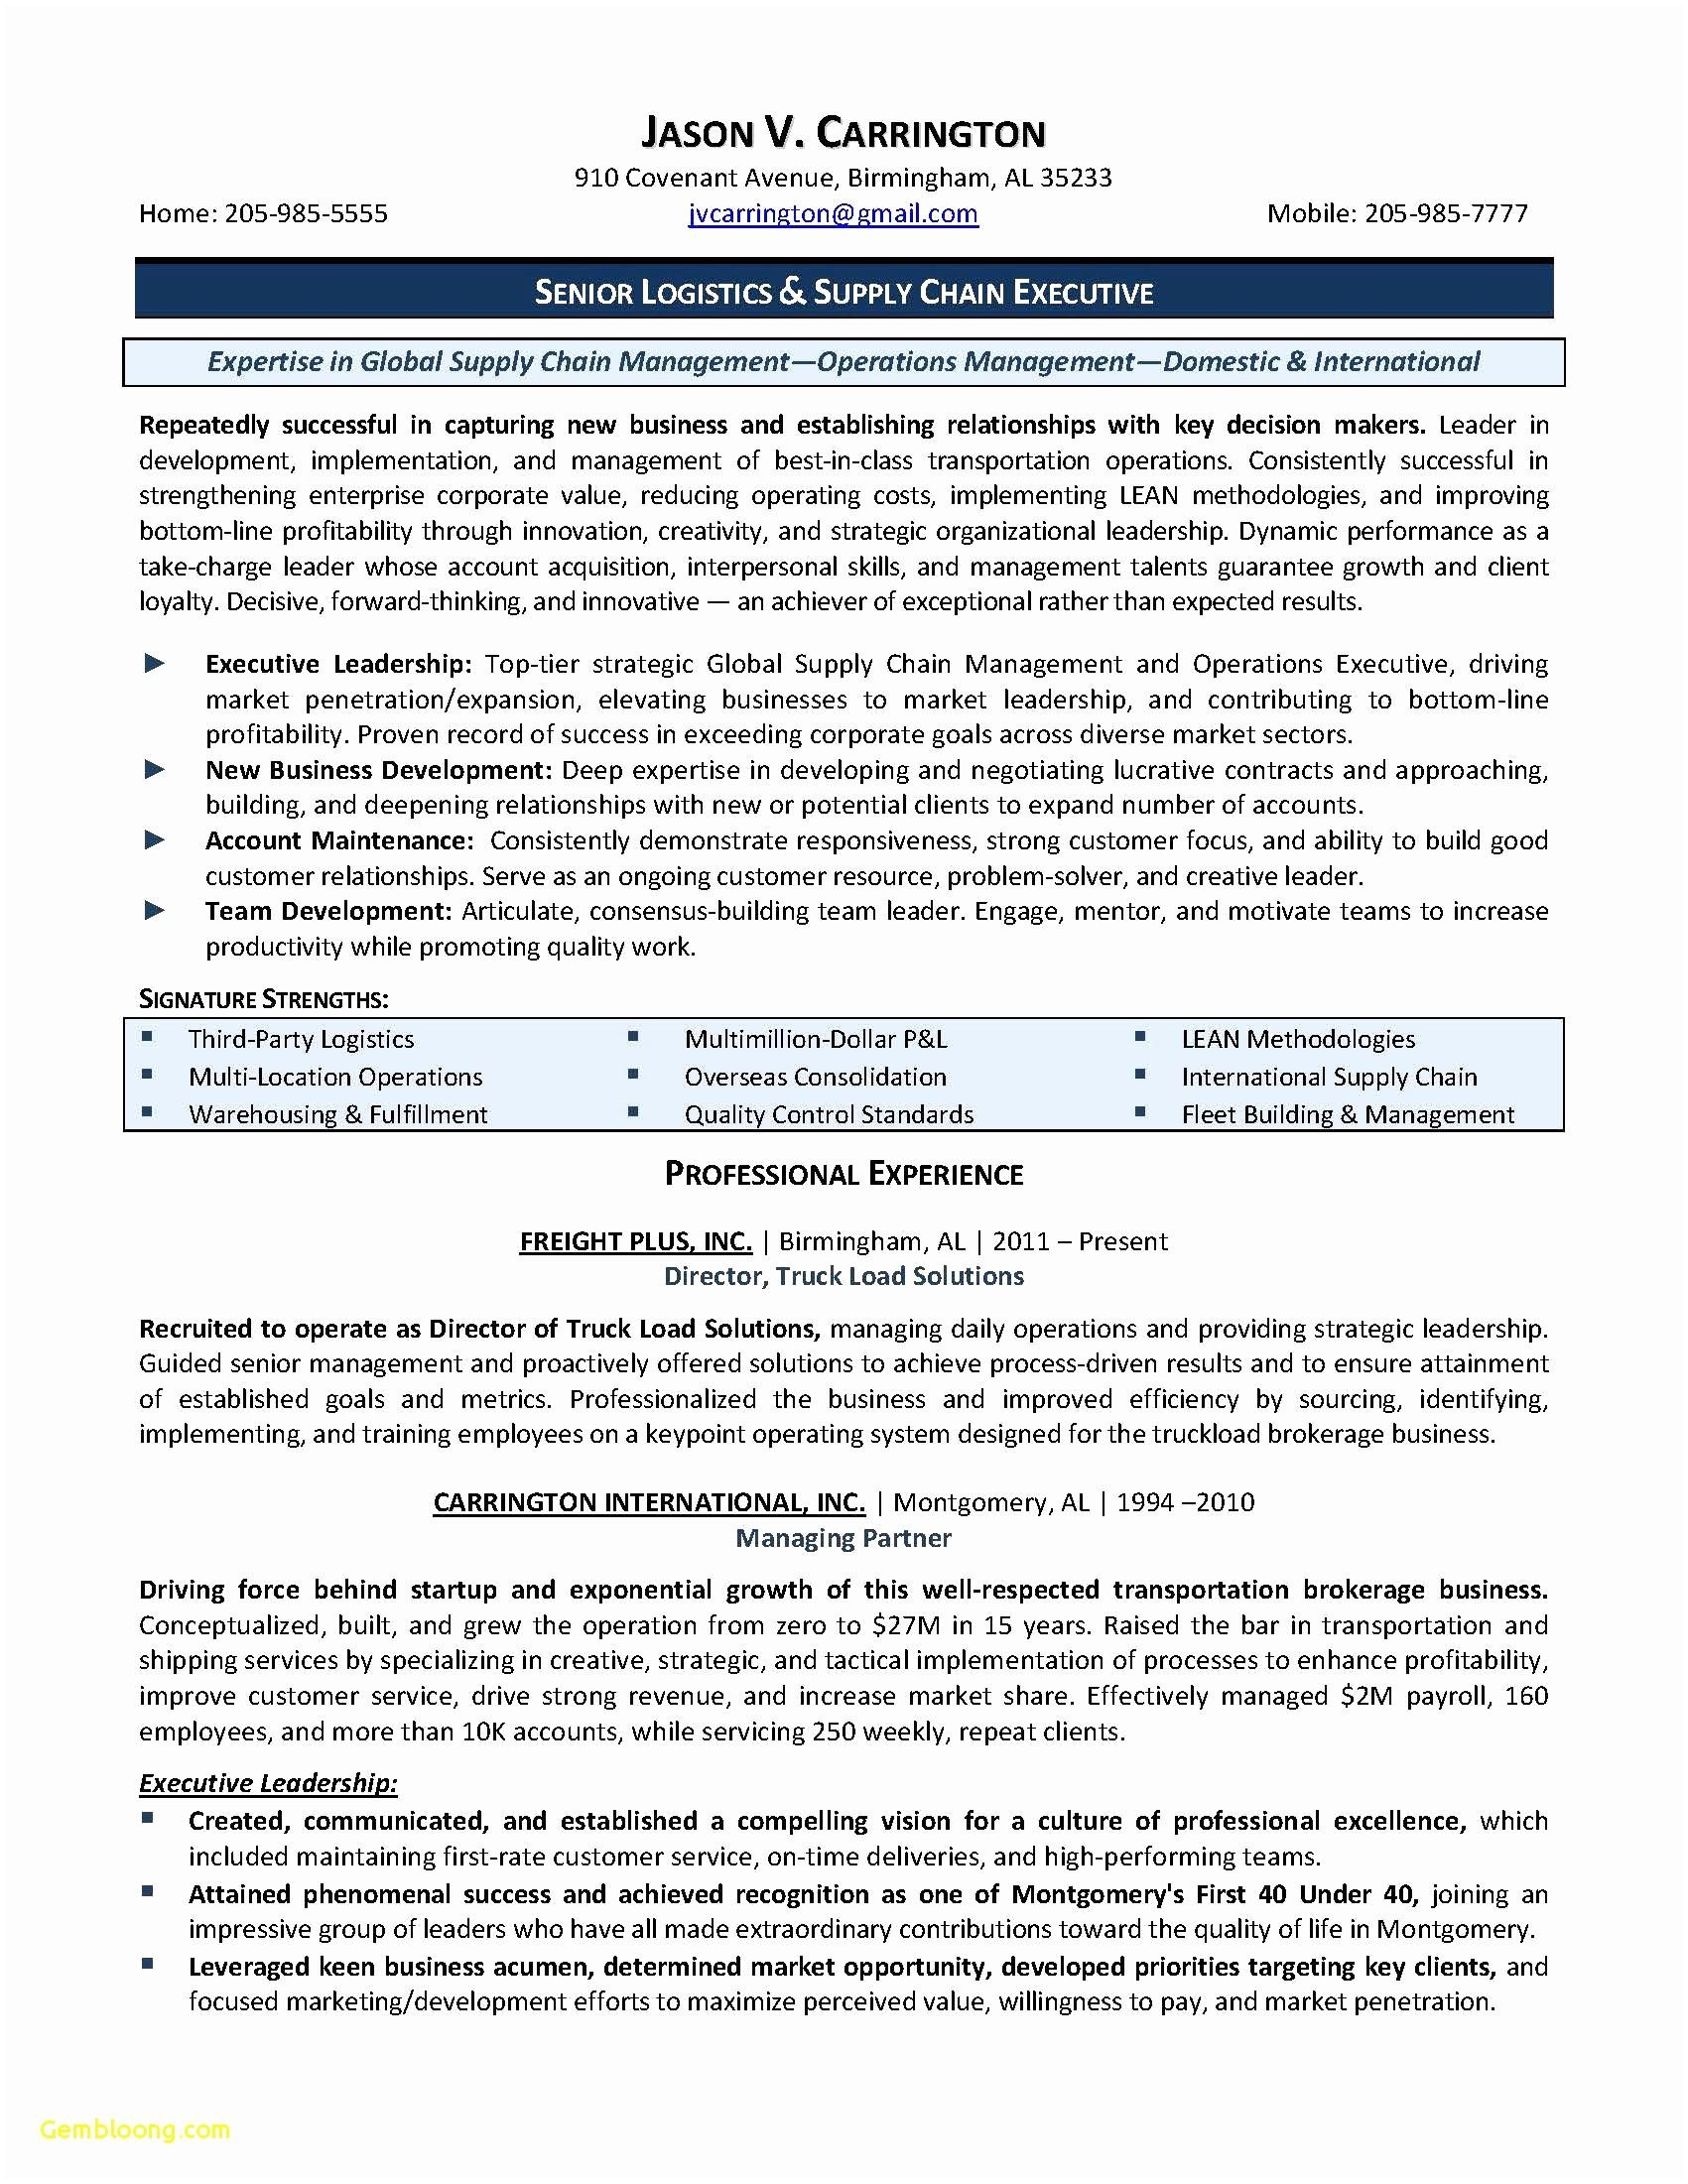 supply chain management resume template example-Resume format for Supply Chain Executive Unique New Resume Cv Executive Sample Luxury Resume Examples 0d 10-o